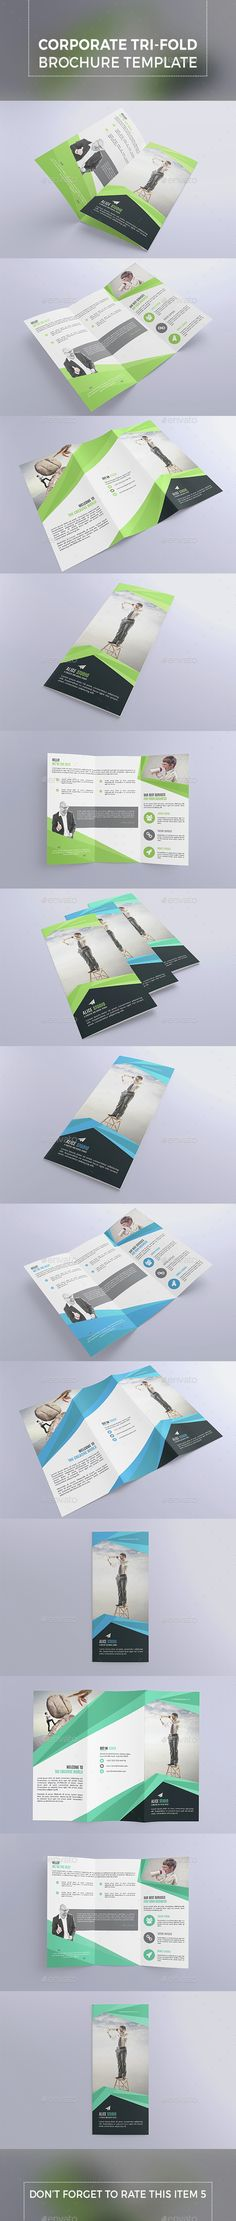 Corporate Tri-Fold Brochure Template Vector EPS, AI. Download here: http://graphicriver.net/item/corporate-trifold-brochure-template/15355432?ref=ksioks